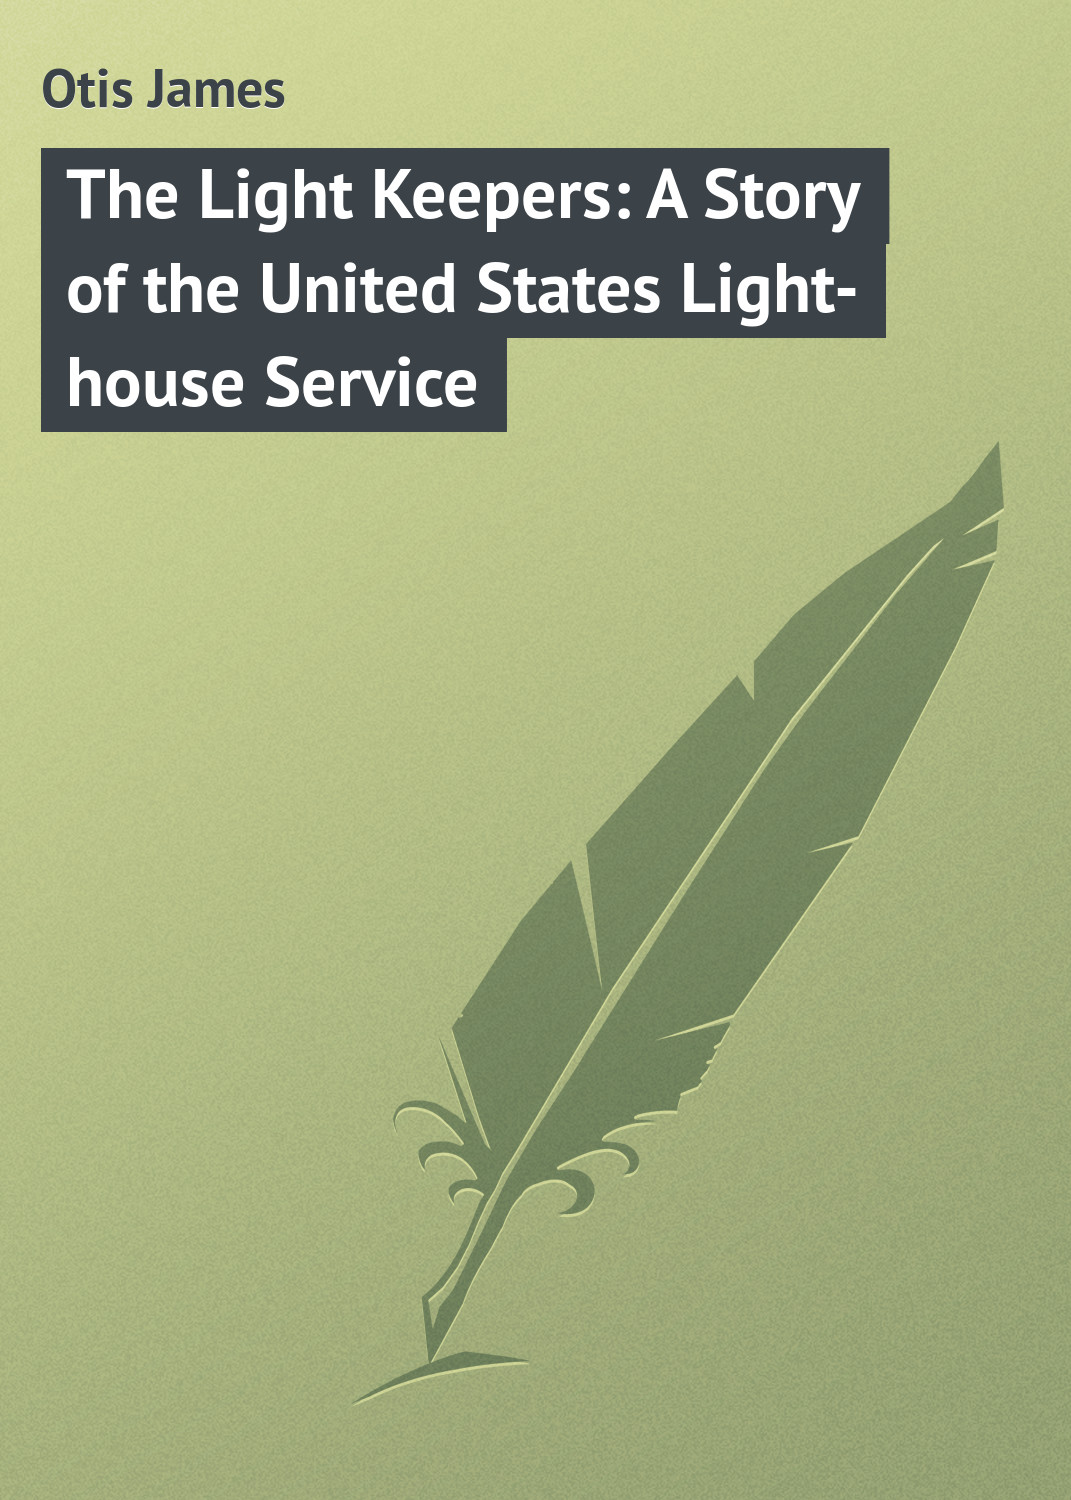 Otis James The Light Keepers: A Story of the United States Light-house Service витамины solgar кальций магний цинк 100 таблеток